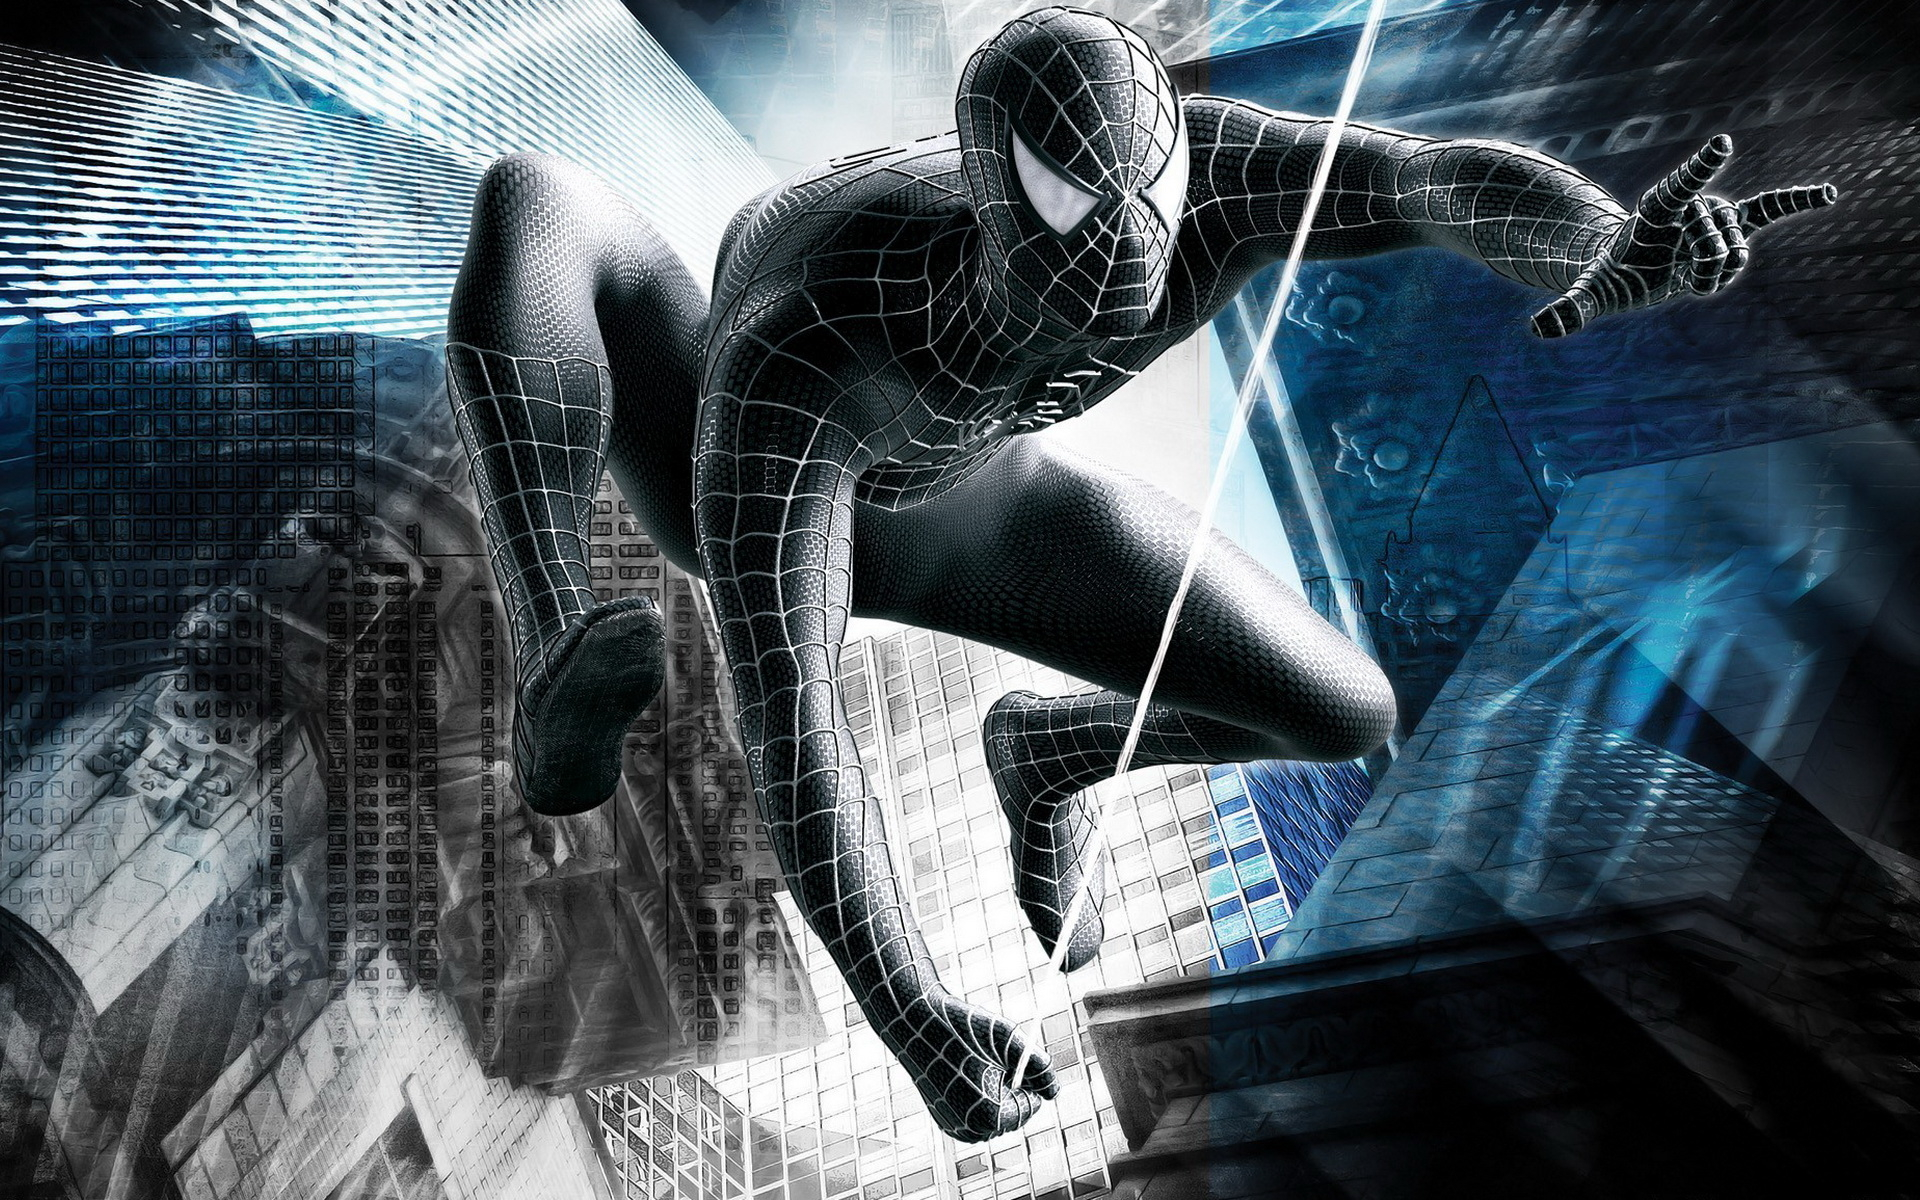 Games_Spider_Man_III_024345_.jpg - -